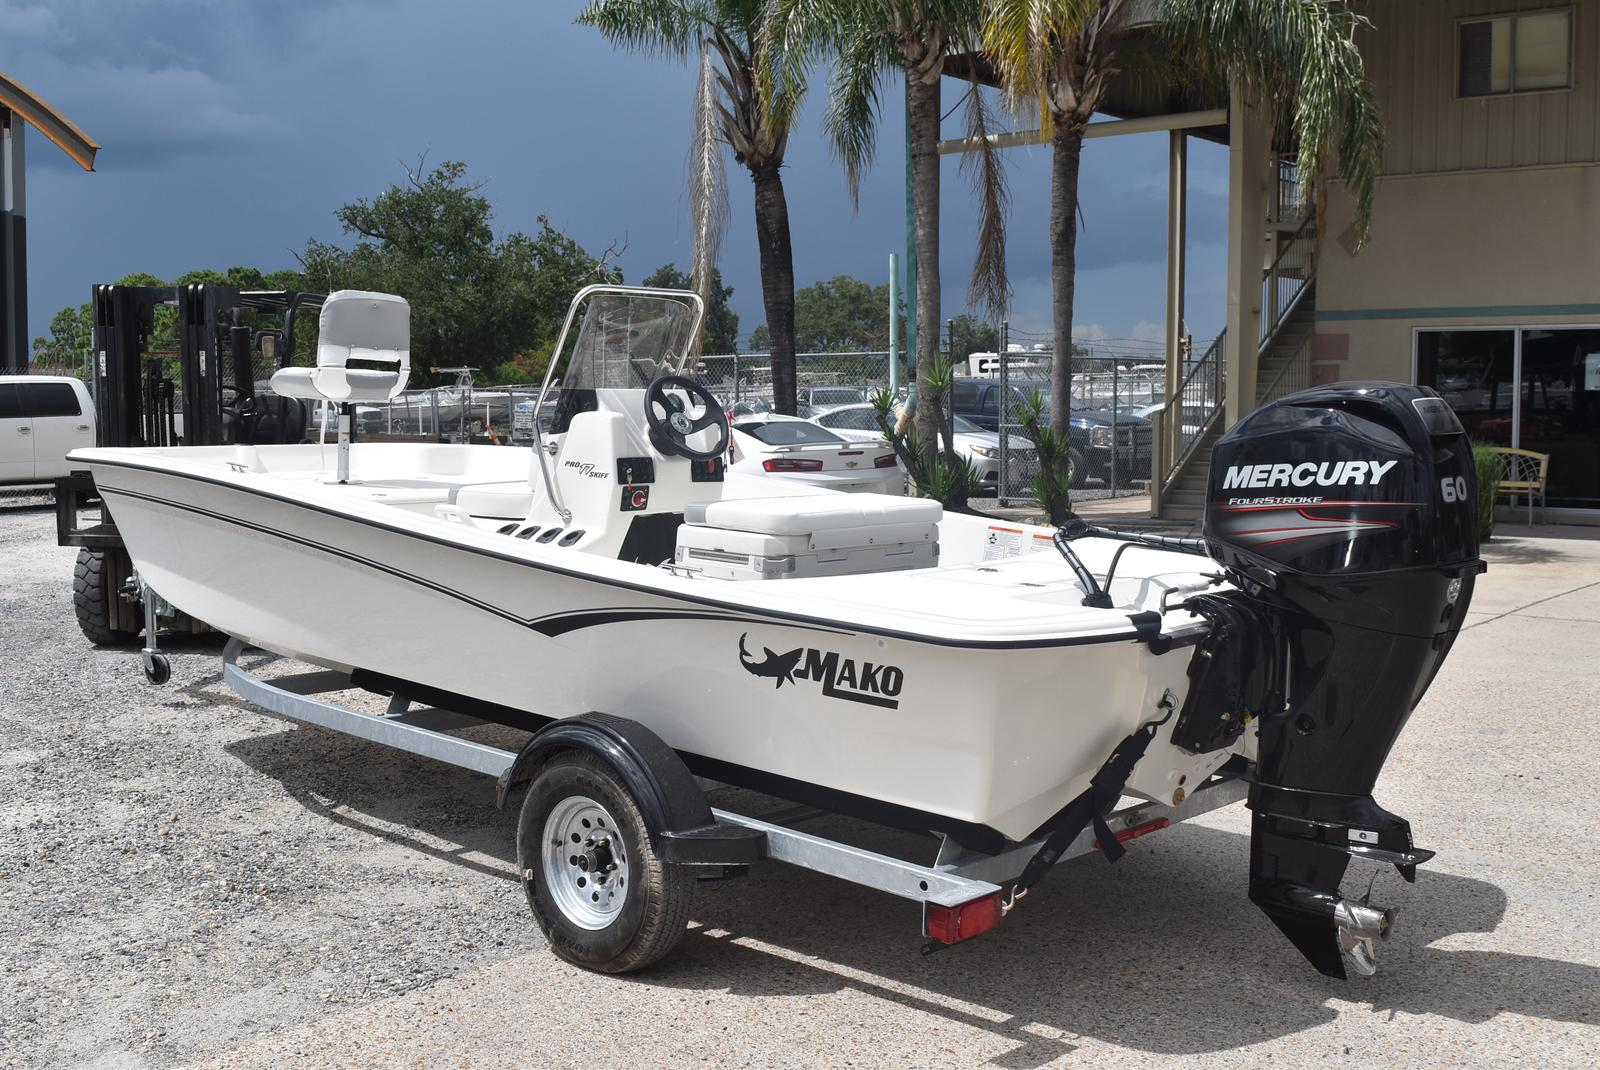 2020 Mako boat for sale, model of the boat is Pro Skiff 17, 75 ELPT & Image # 184 of 702